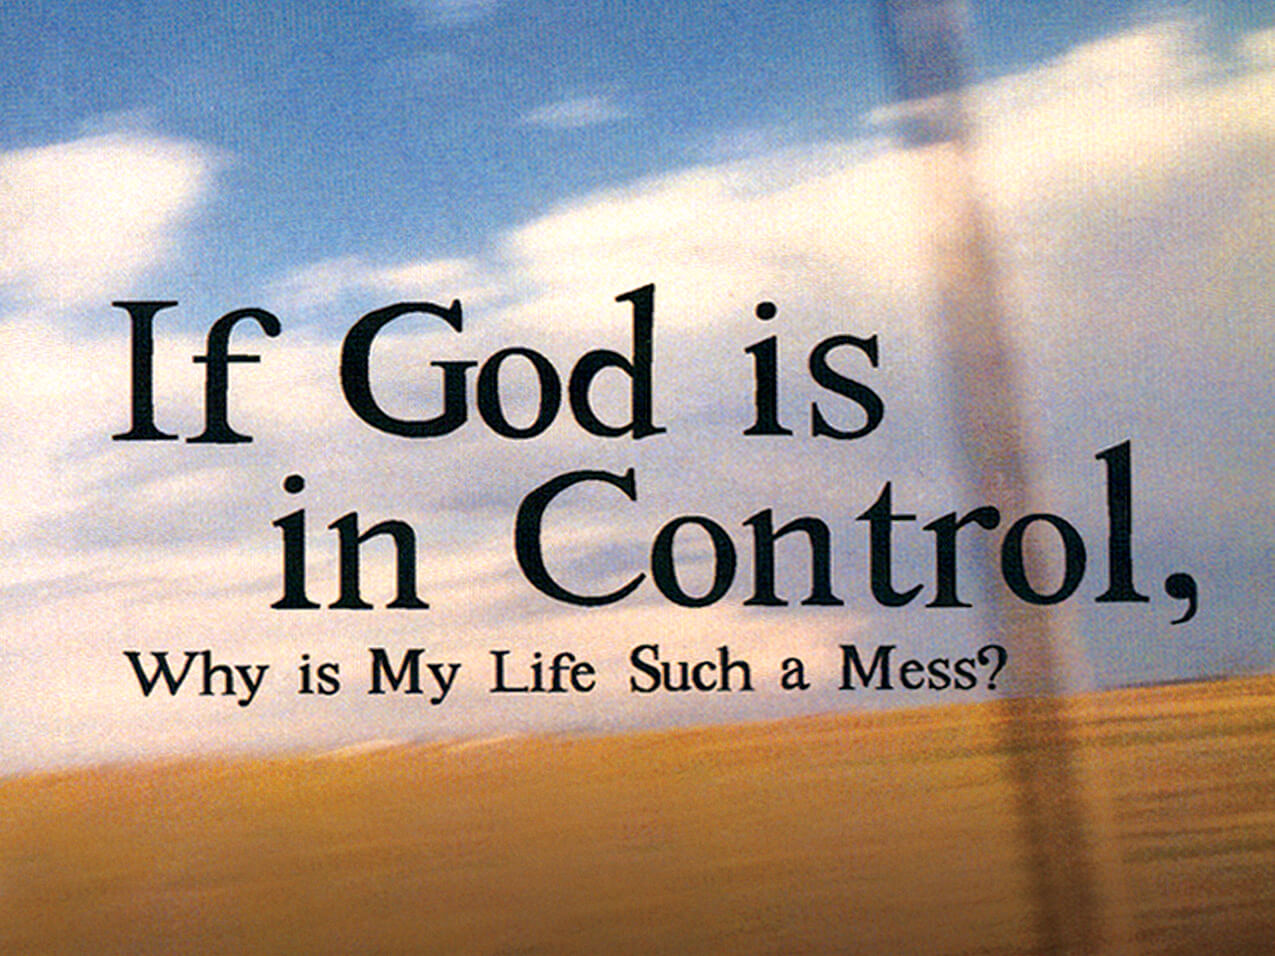 god in my life How to change yourself: self-improvement  but when we are determined that serving god is our most important purpose in life,  visit light to my path.